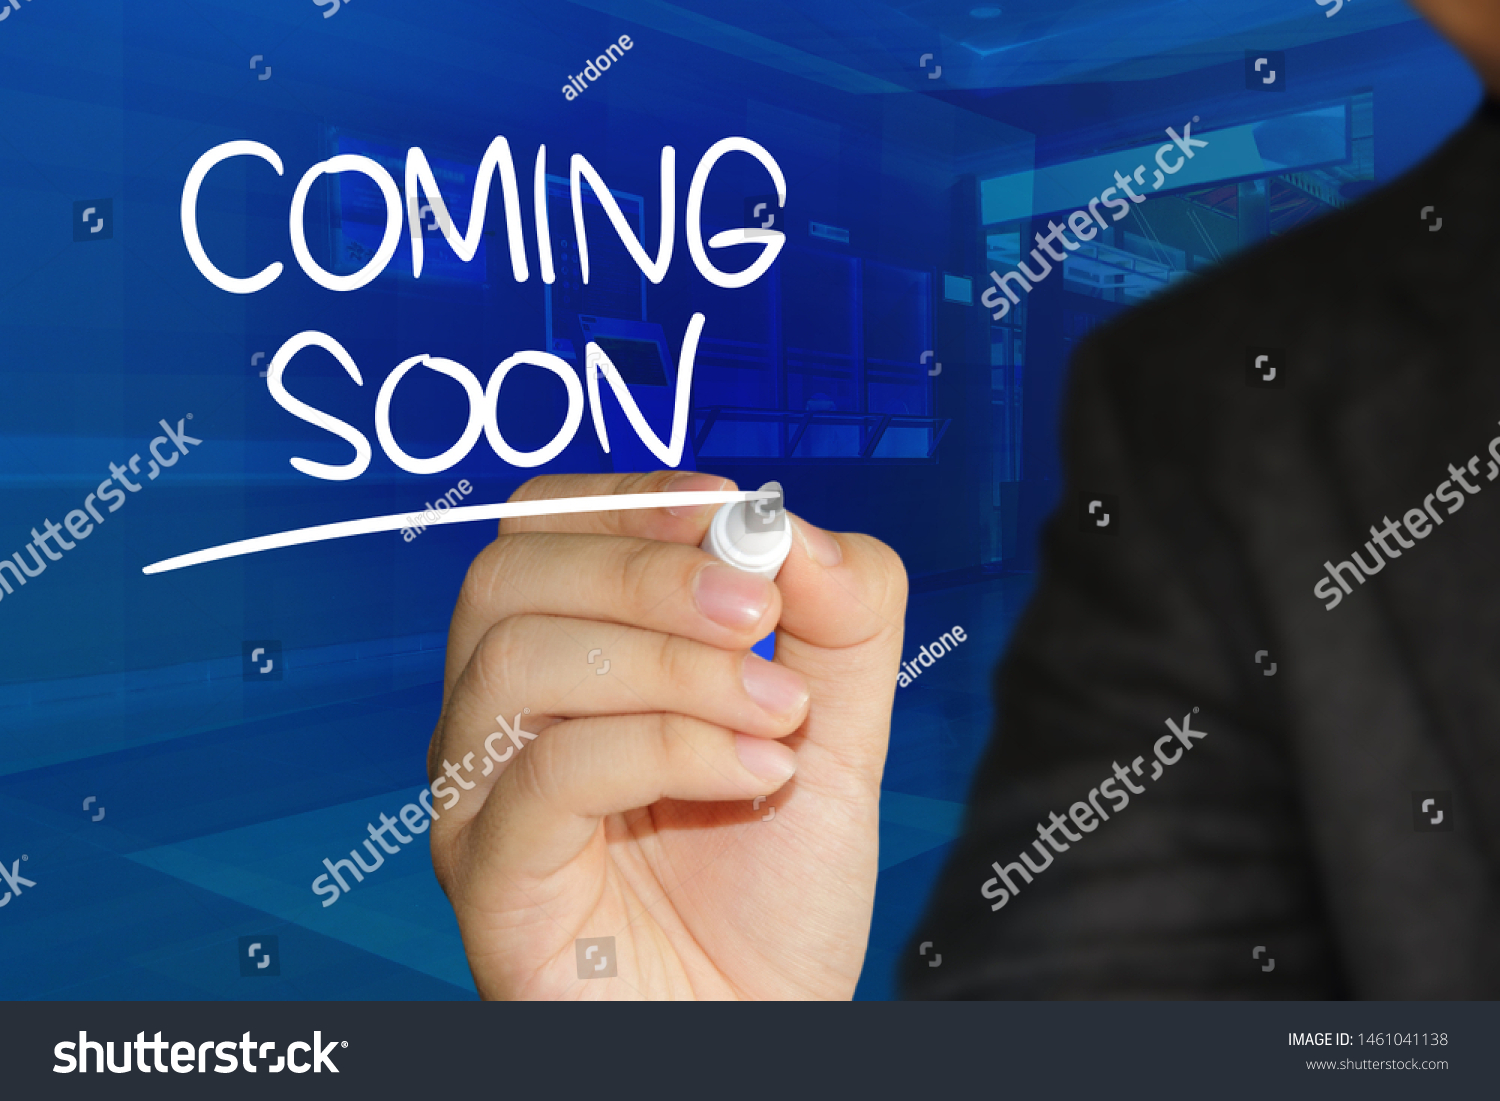 Coming Soon Motivational Inspirational Business Marketing Stock Photo Edit Now 1461041138